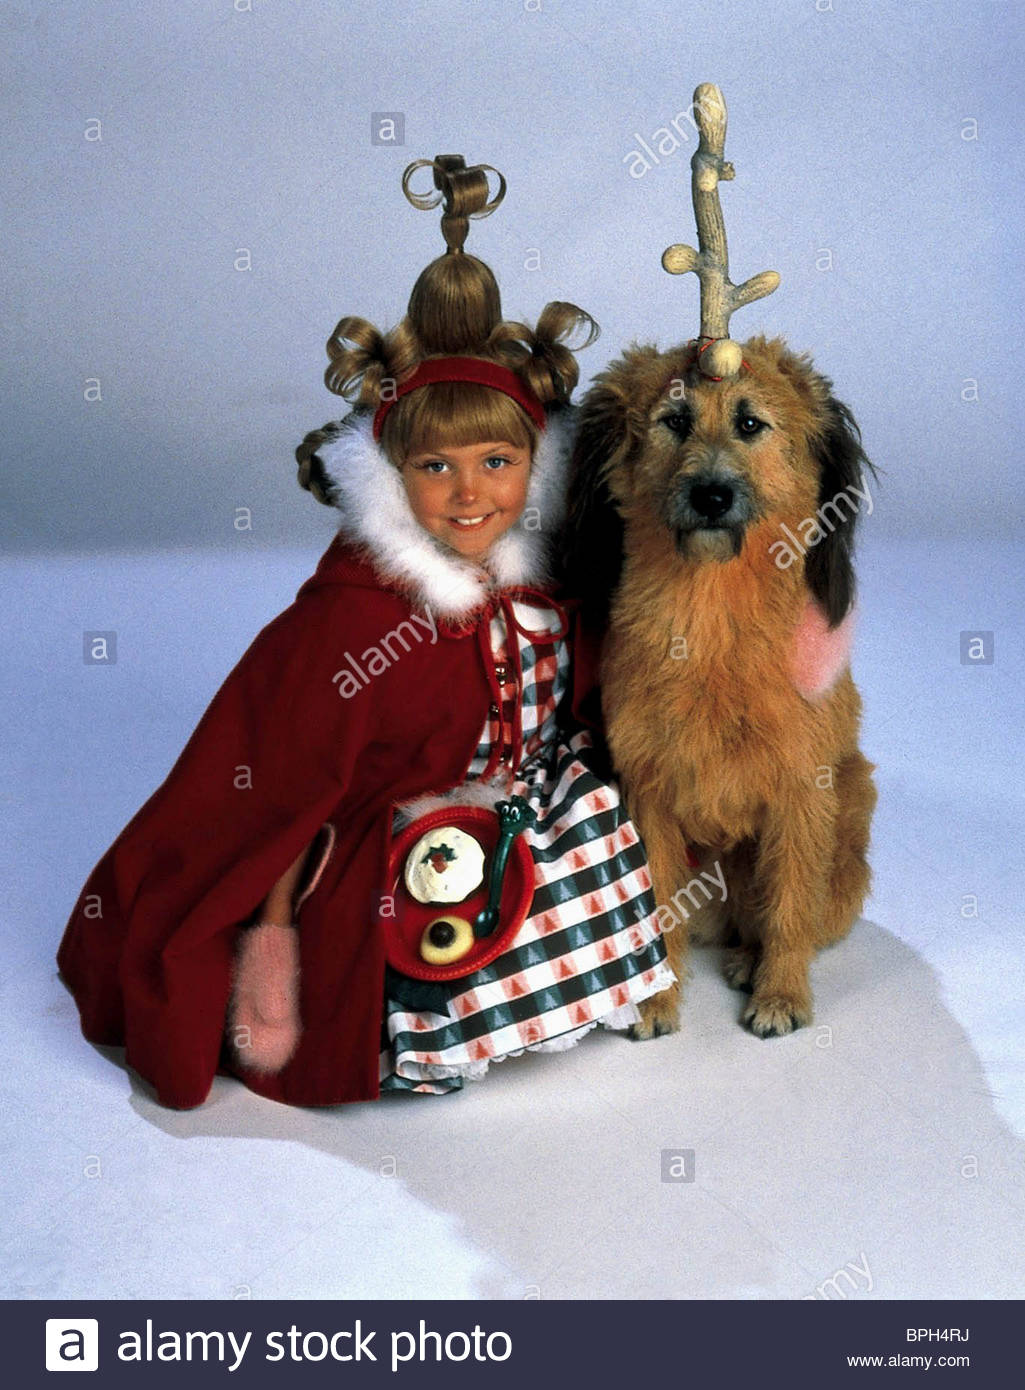 Uncategorized Grinch Dog taylor momsen max the dog how grinch stole christmas 2000 stock photo 2000